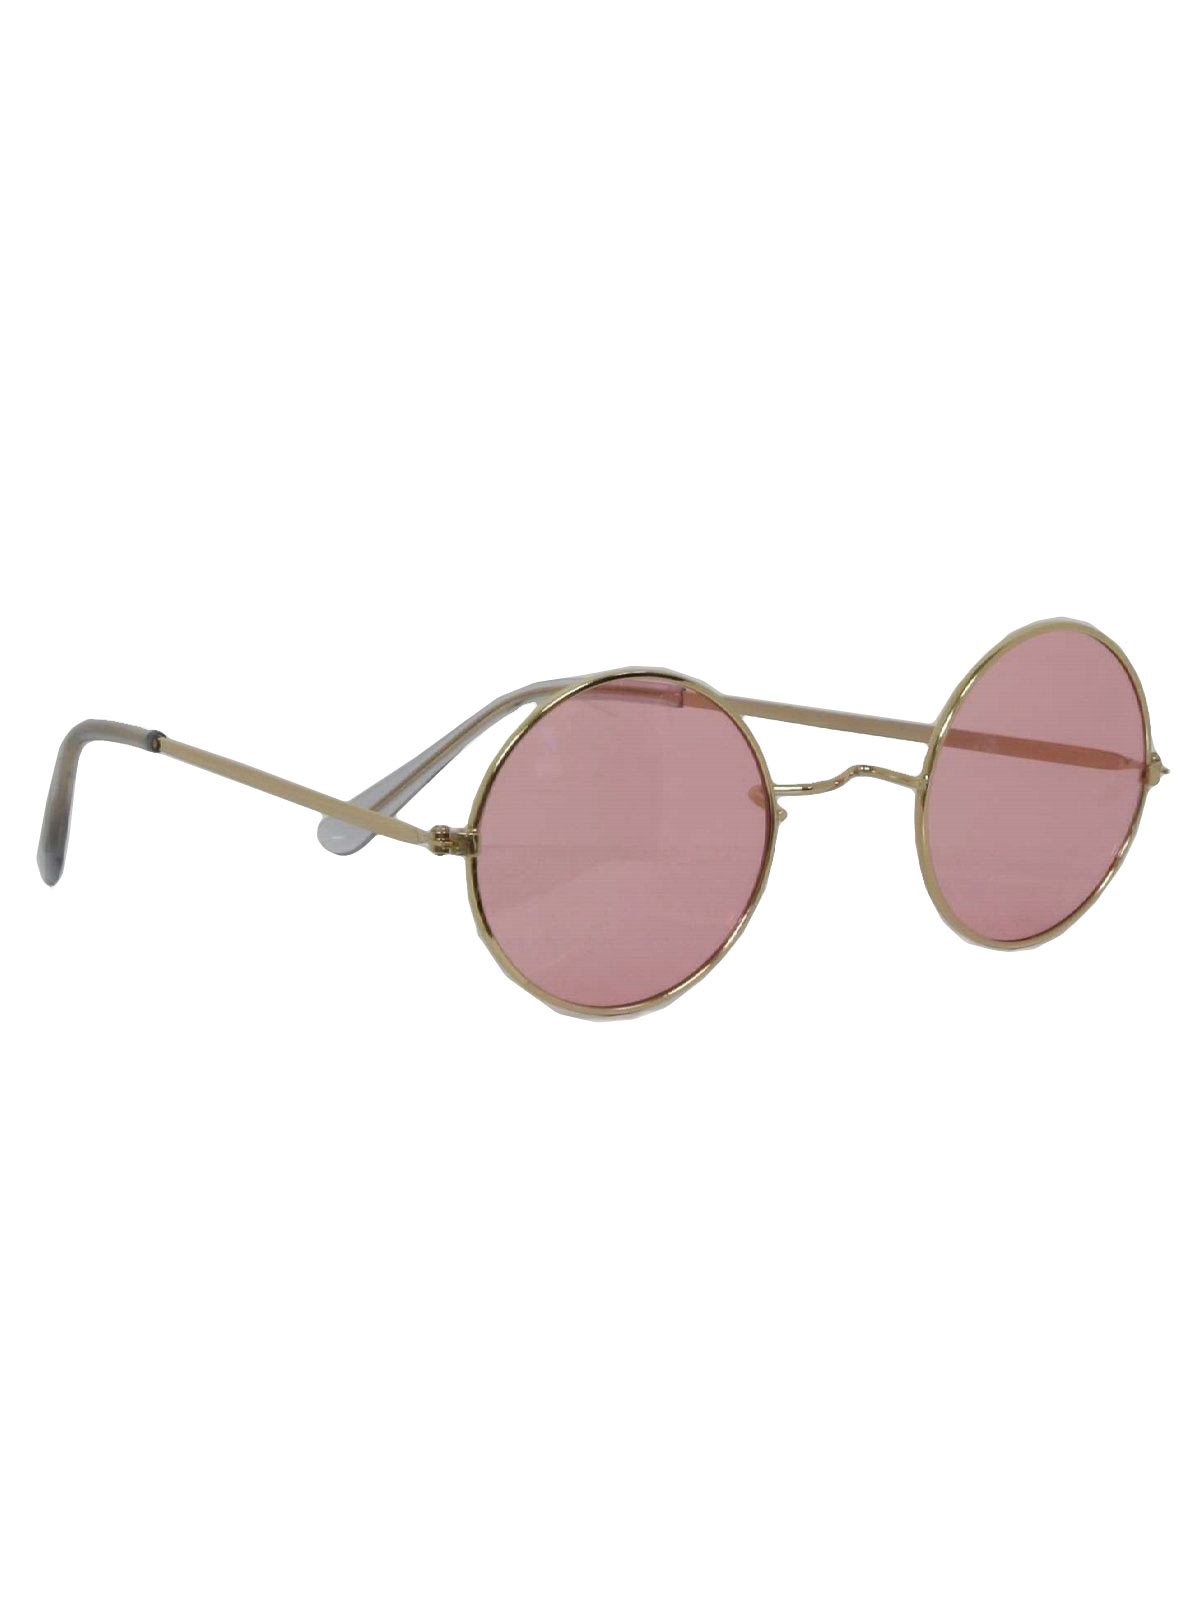 194b98658d Vintage Round Hippie Glasses 70 s Glasses  70s style (made recently ...